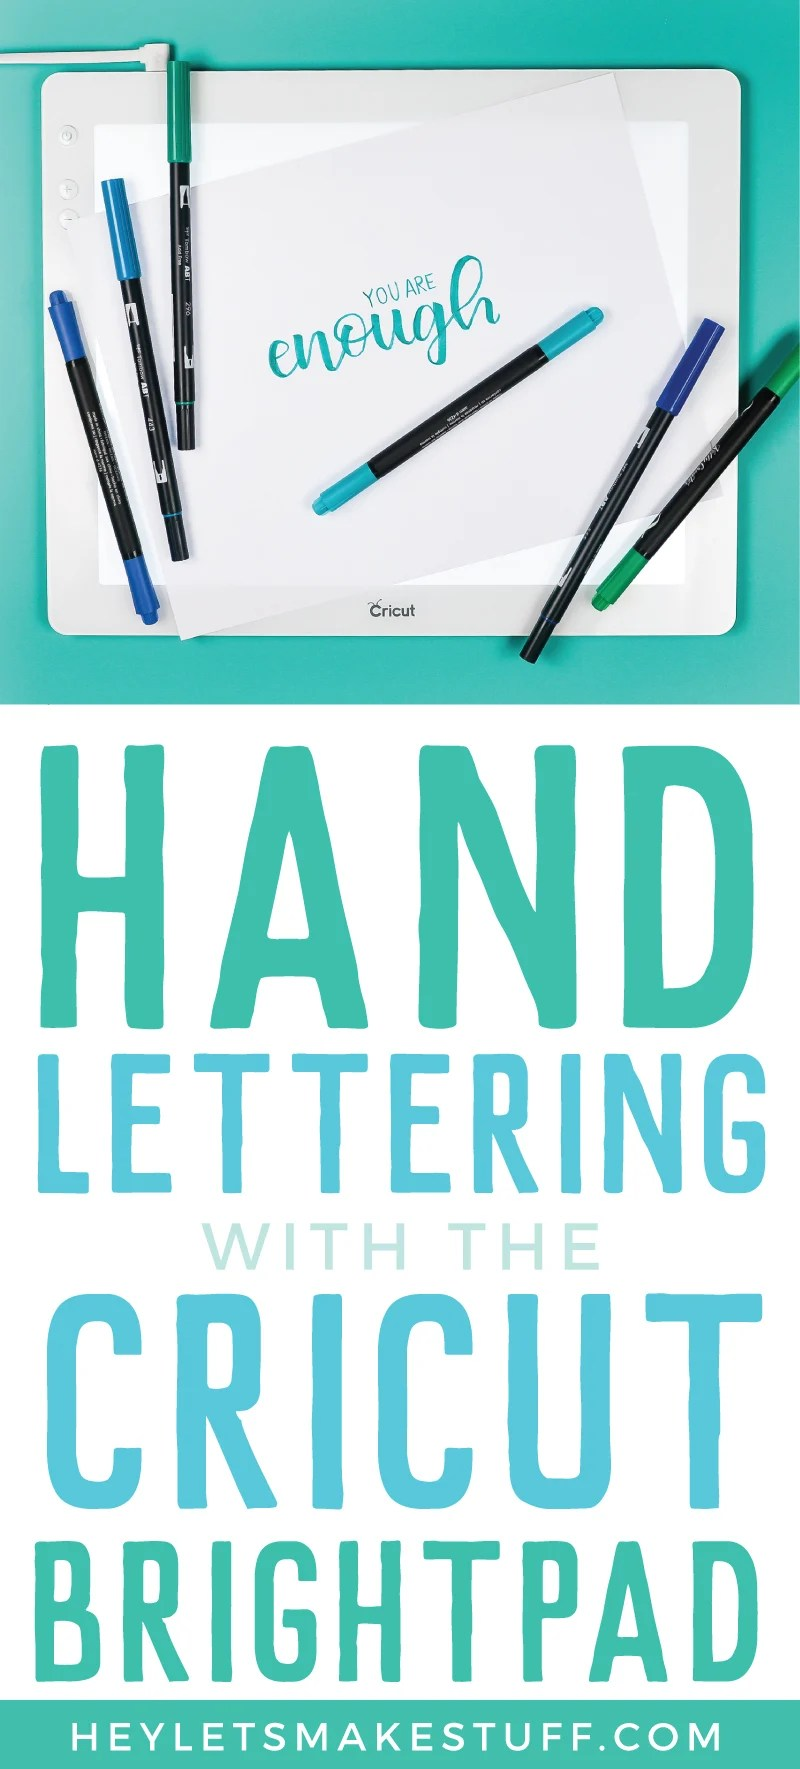 The Cricut Brightpad is not just for weeding vinyl! I use mine all the time to practice my hand lettering—all you need are practice sheets, blank paper, and a pen! via @heyletsmakestuf